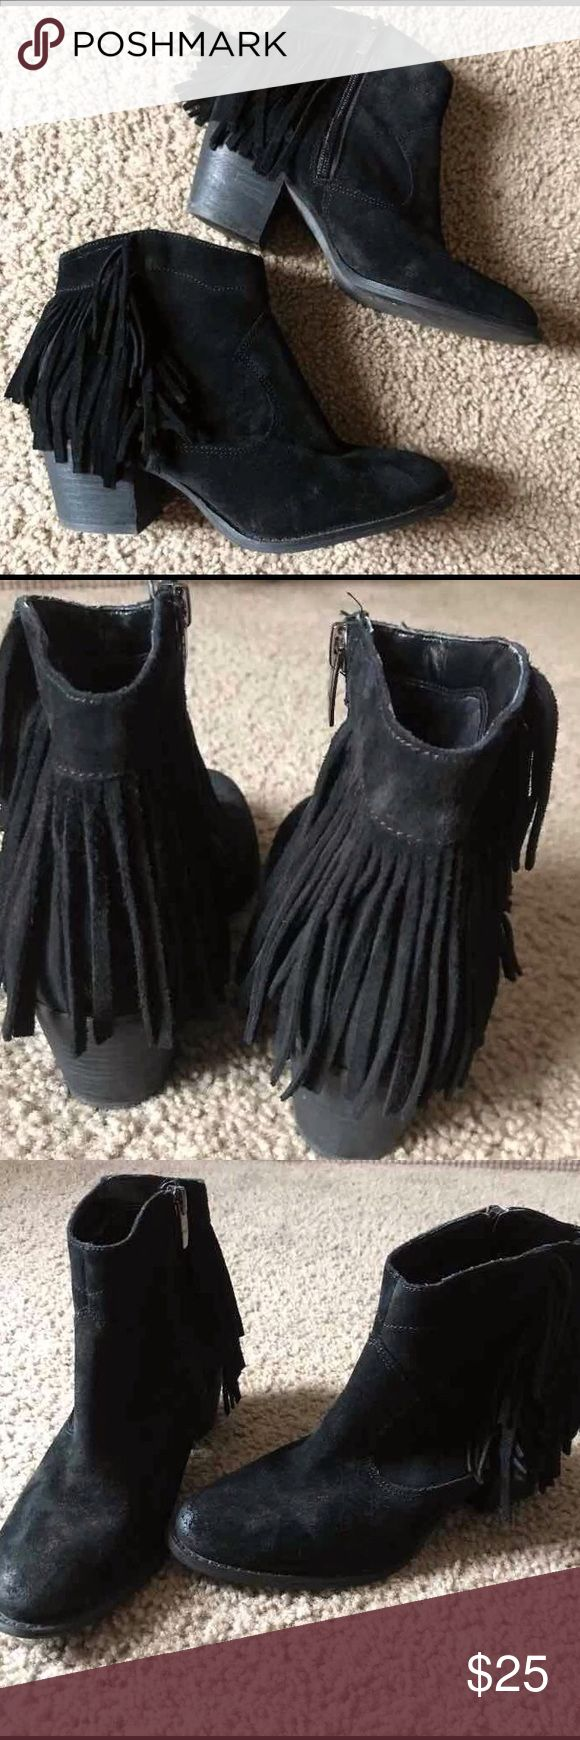 "Marc Fisher Black Fringe Ankle Boots (7) Black Marc Fisher Suede Fringe Ankle Booties size 7 ~ Fit true. Leather upper Retail $49  ""Distressed"" intentionally. Great Condition. (See all pics).  Heel height that's just right for day night. side zipper  Fringe detail, side ankle zipper Padded insole Heel 2-1/4""  ❤️ Unless Otherwise stated NWT, all items for sale are from my OWN closet, and are (GENTLY) used, unless otherwise described differently. Please don't expect items that aren't NWT to…"